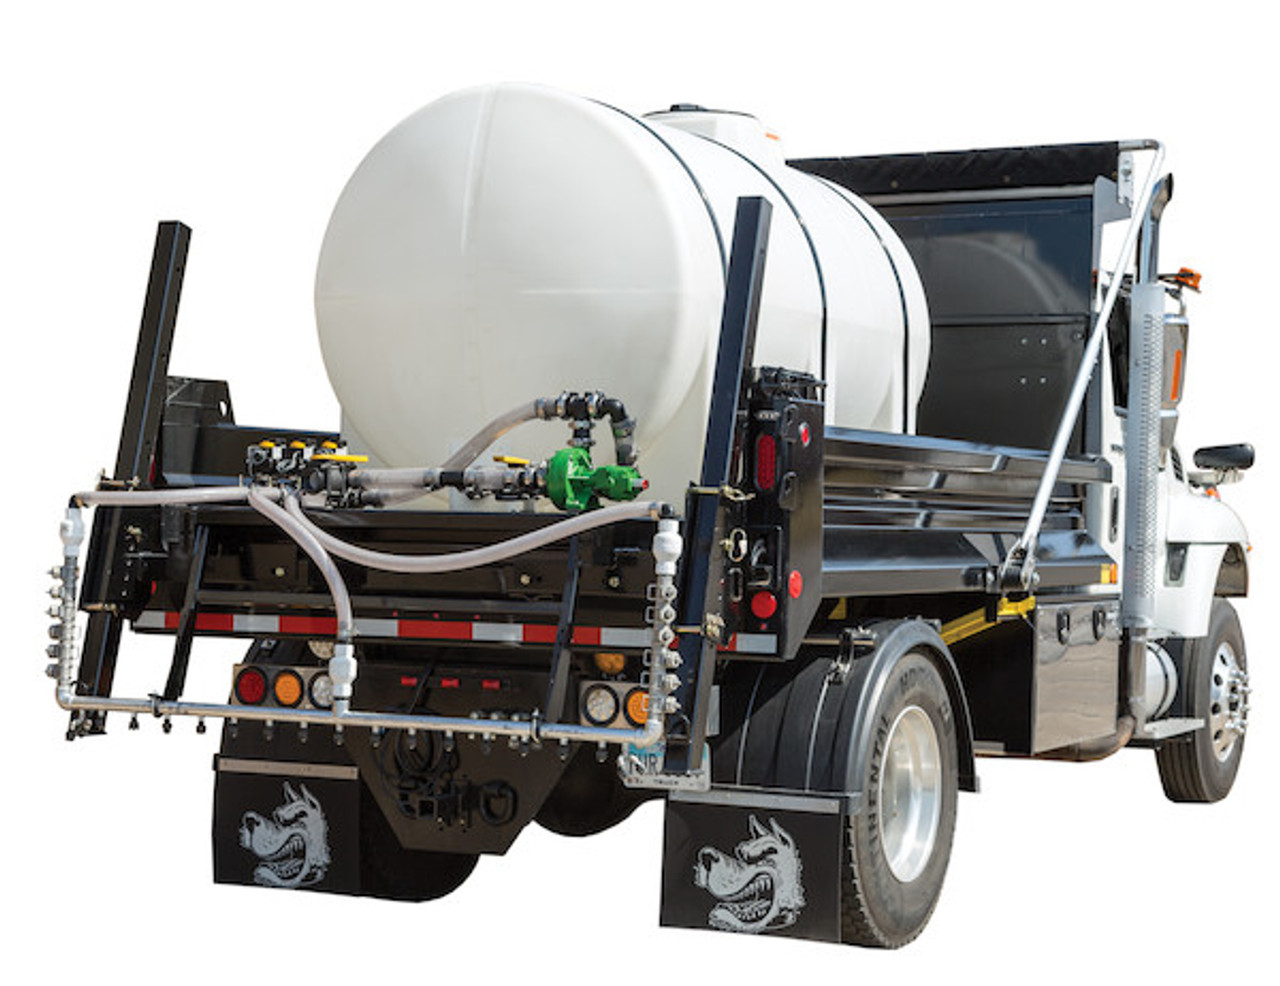 6192730 BUYERS SALTDOGG 1065 Gallon Hydraulic Anti-Ice System With One-Lane Spray Bar And Manual Application Rate Control  #1